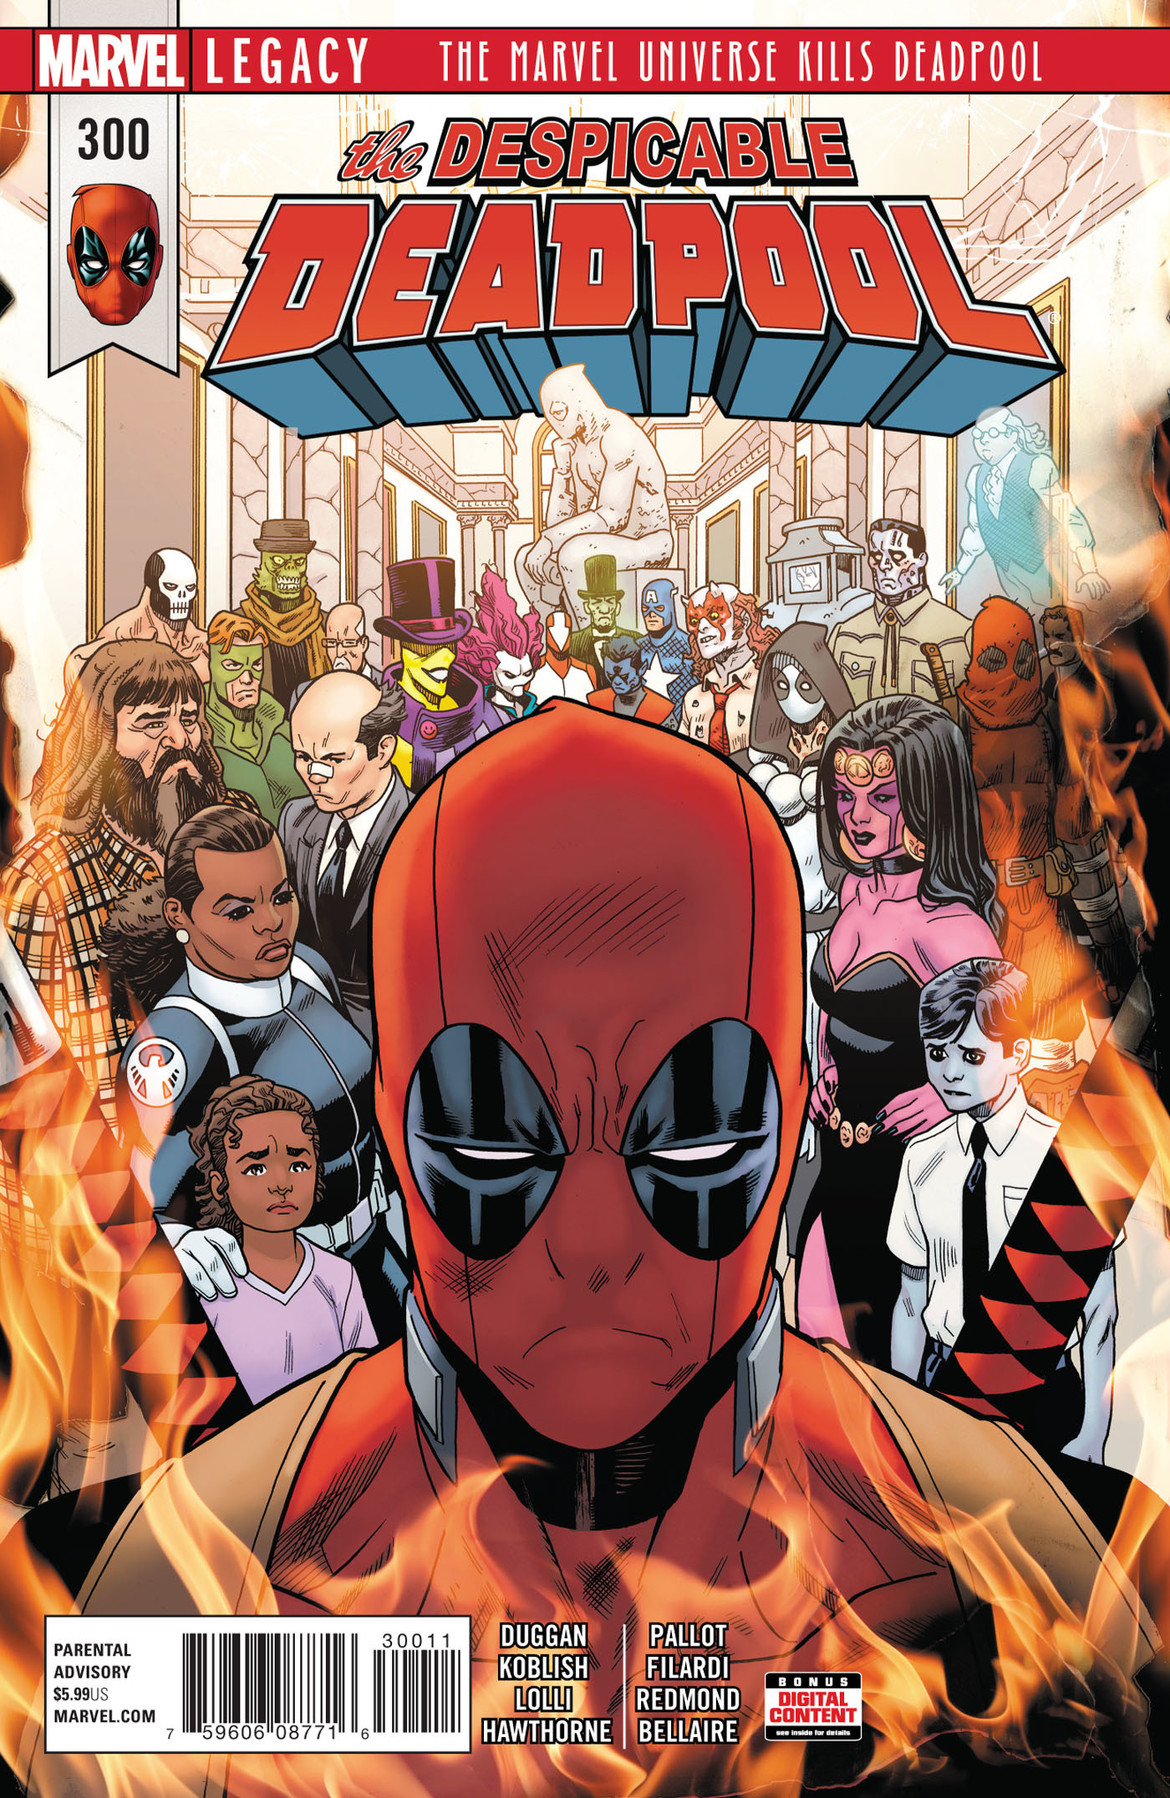 Deadpool 300 cover